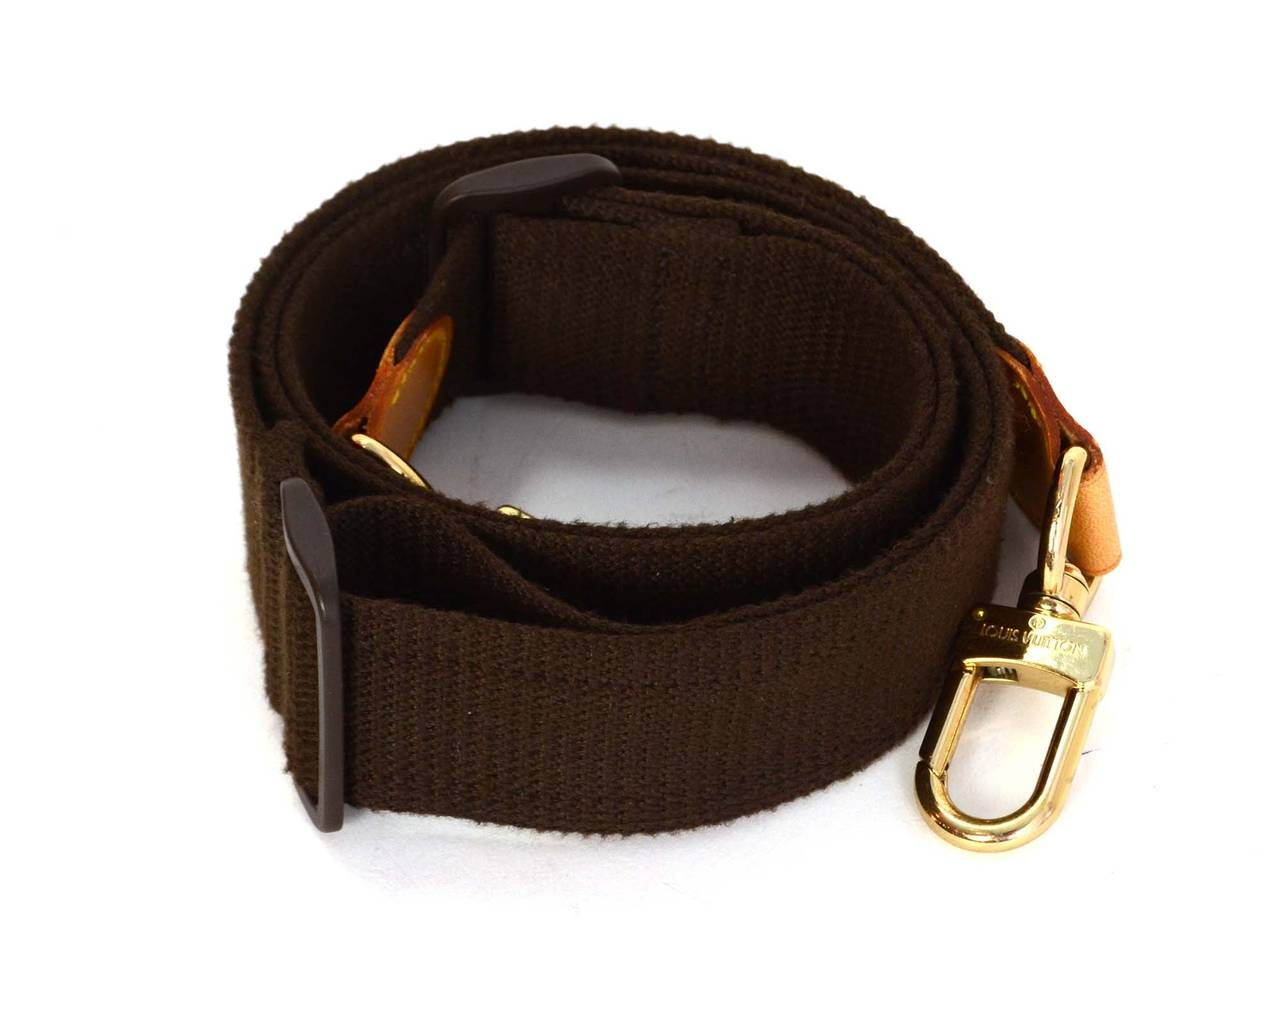 2465e1e61aff Louis Vuitton Brown Canvas Keepall Bag Strap Features sliding buckle to  extend or retract to varying